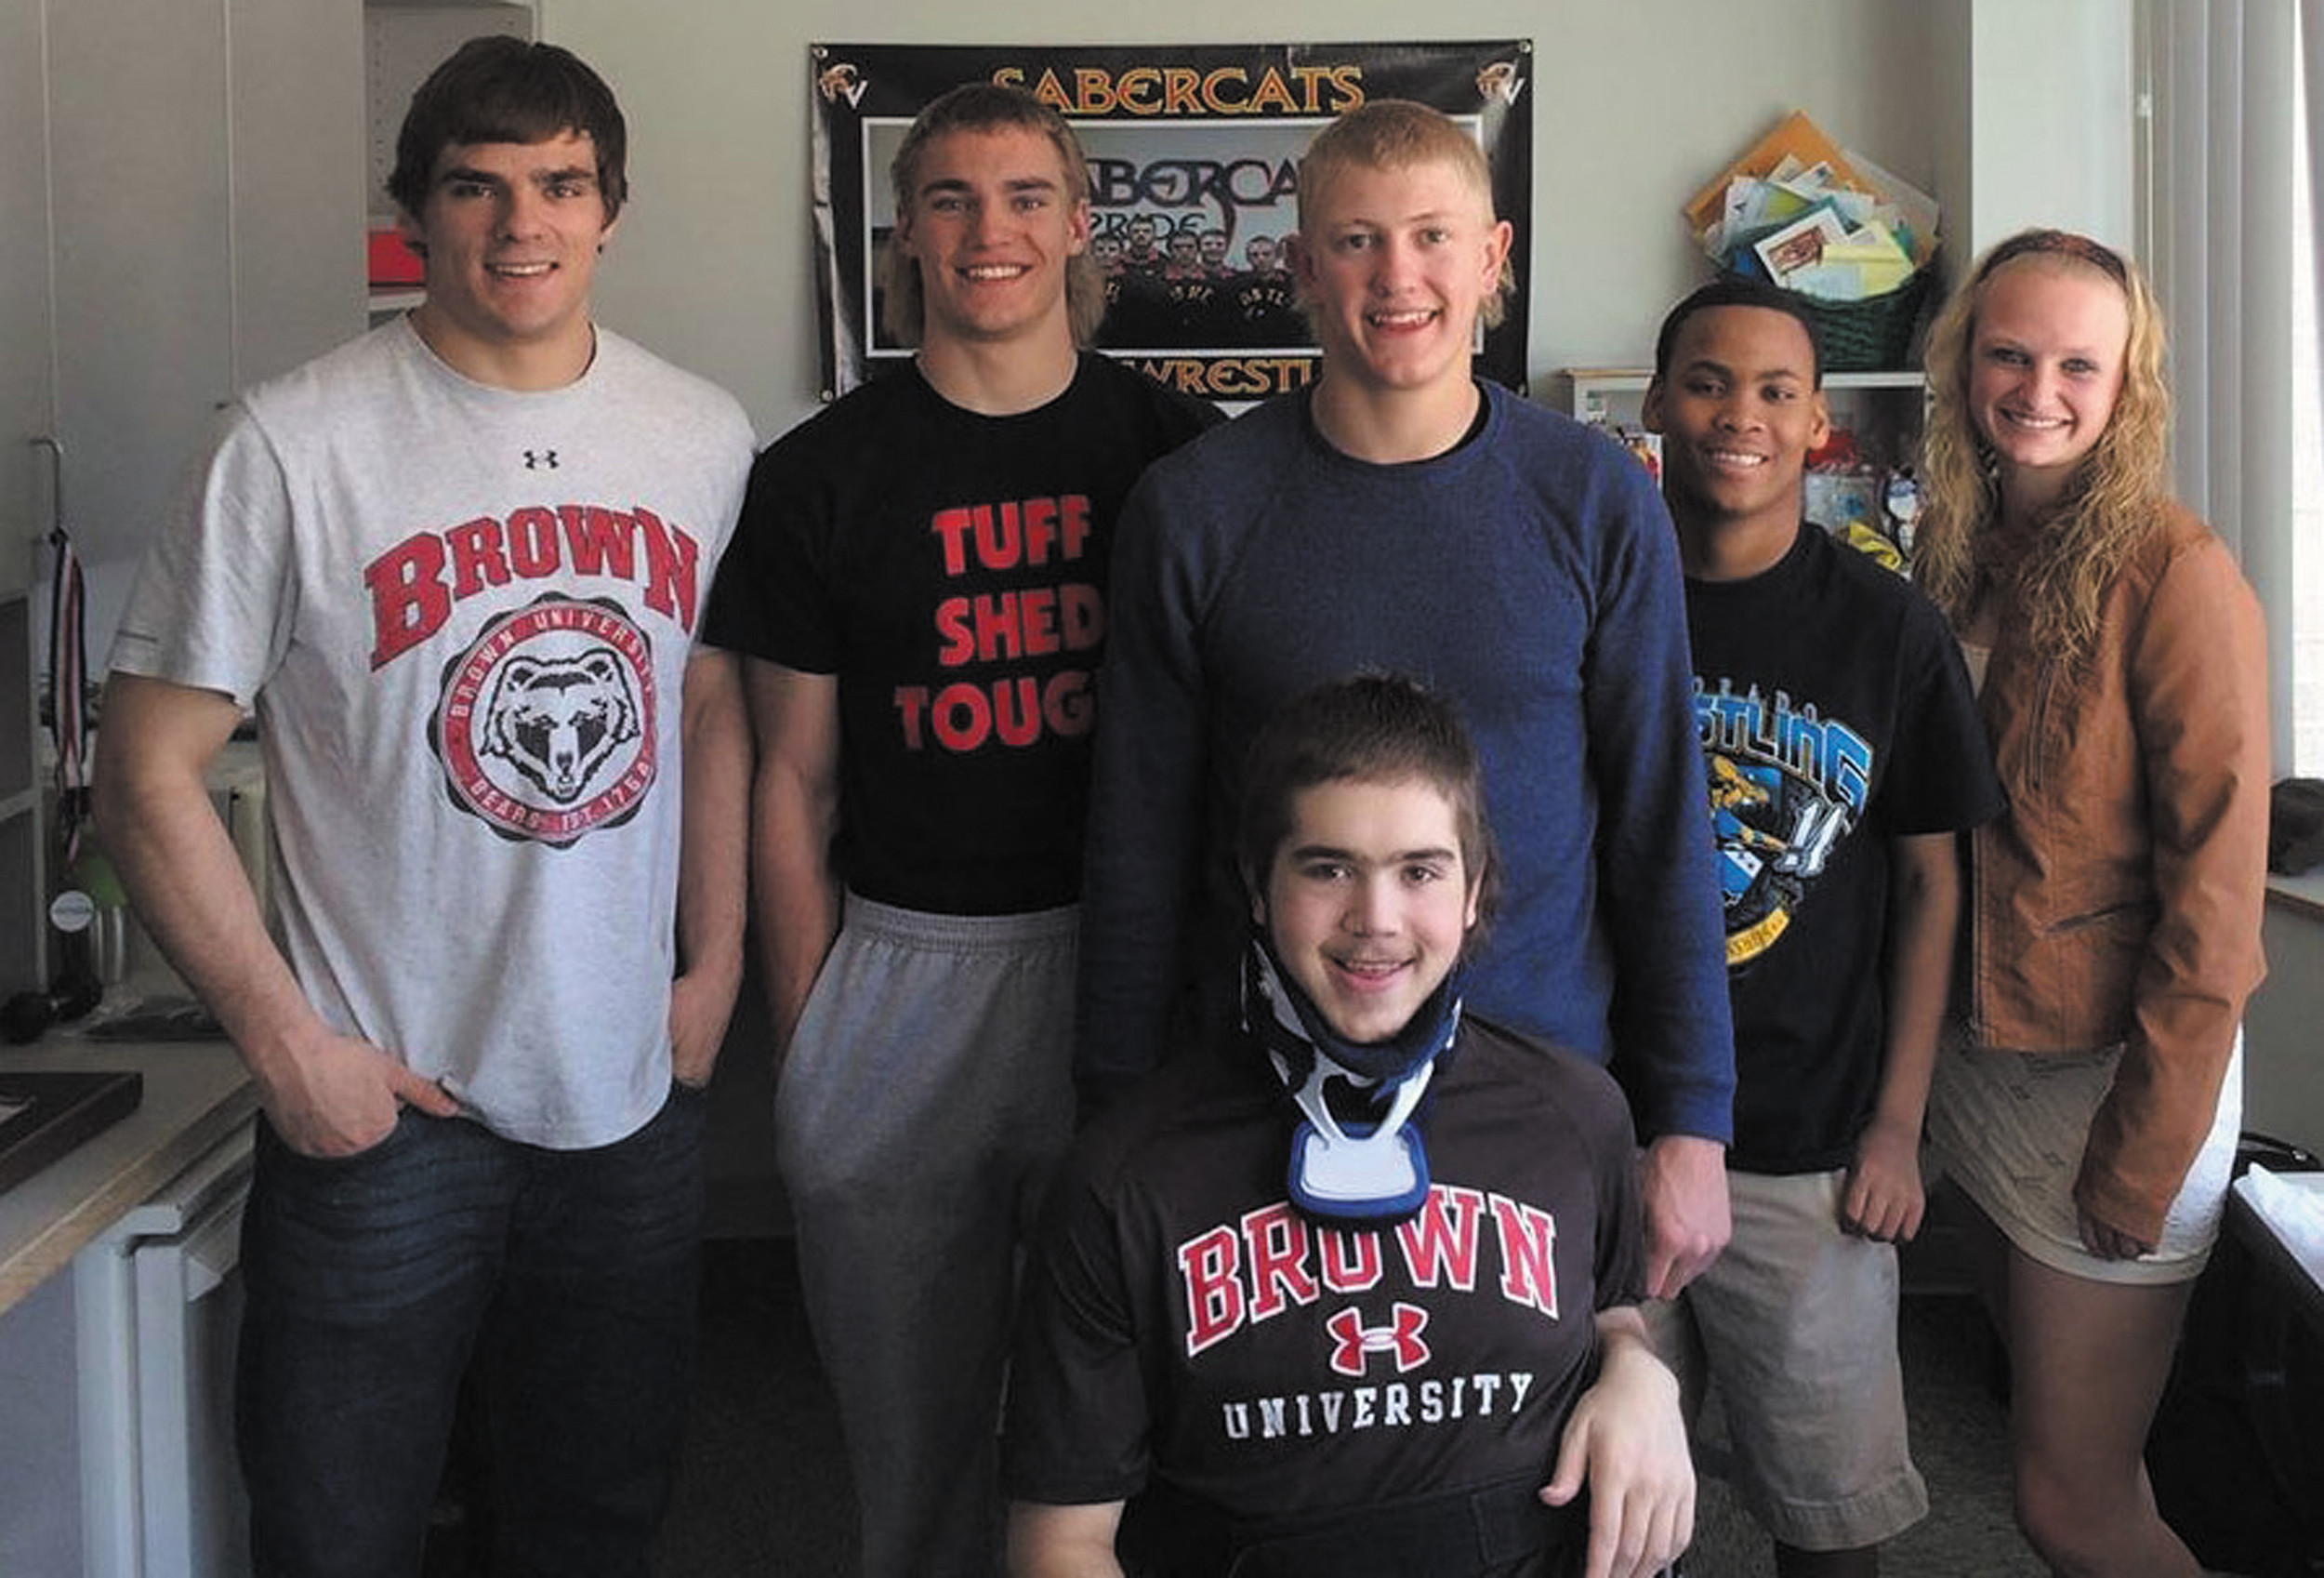 Castle View senior Joe Hunsaker, front center, had plenty of visits from friends and family during his 10-week stay at Craig Hospital. From left, 2012 CVHS graduate Gus Marker, CVHS junior Hudsen Marker, CVHS senior Kaleb Geiger, the Markers' younger brother, Ricky, and Becca Westlake.